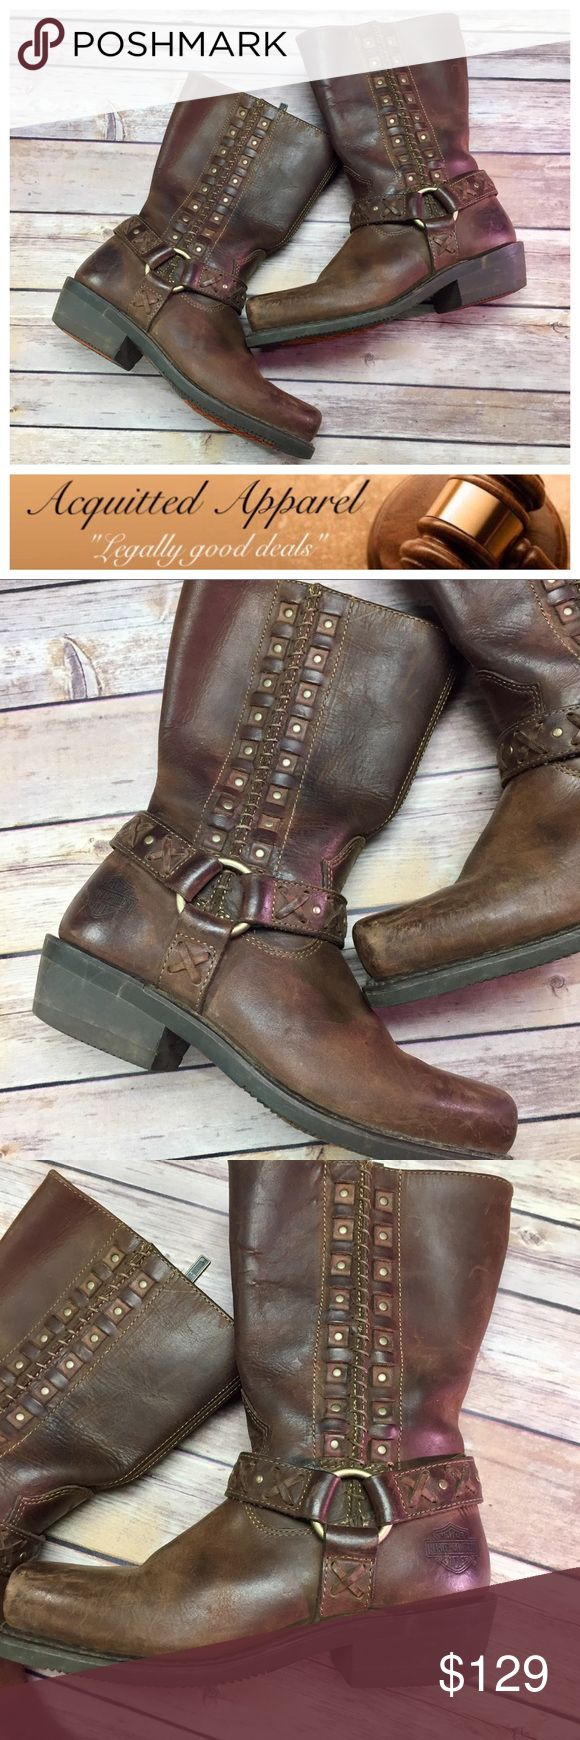 [Harley Davidson] Leather Riding Boots Amazing condition leather Harley Davidson riding boots. Real leather and can be re polished and worn for life. Harley-Davidson Shoes Combat & Moto Boots